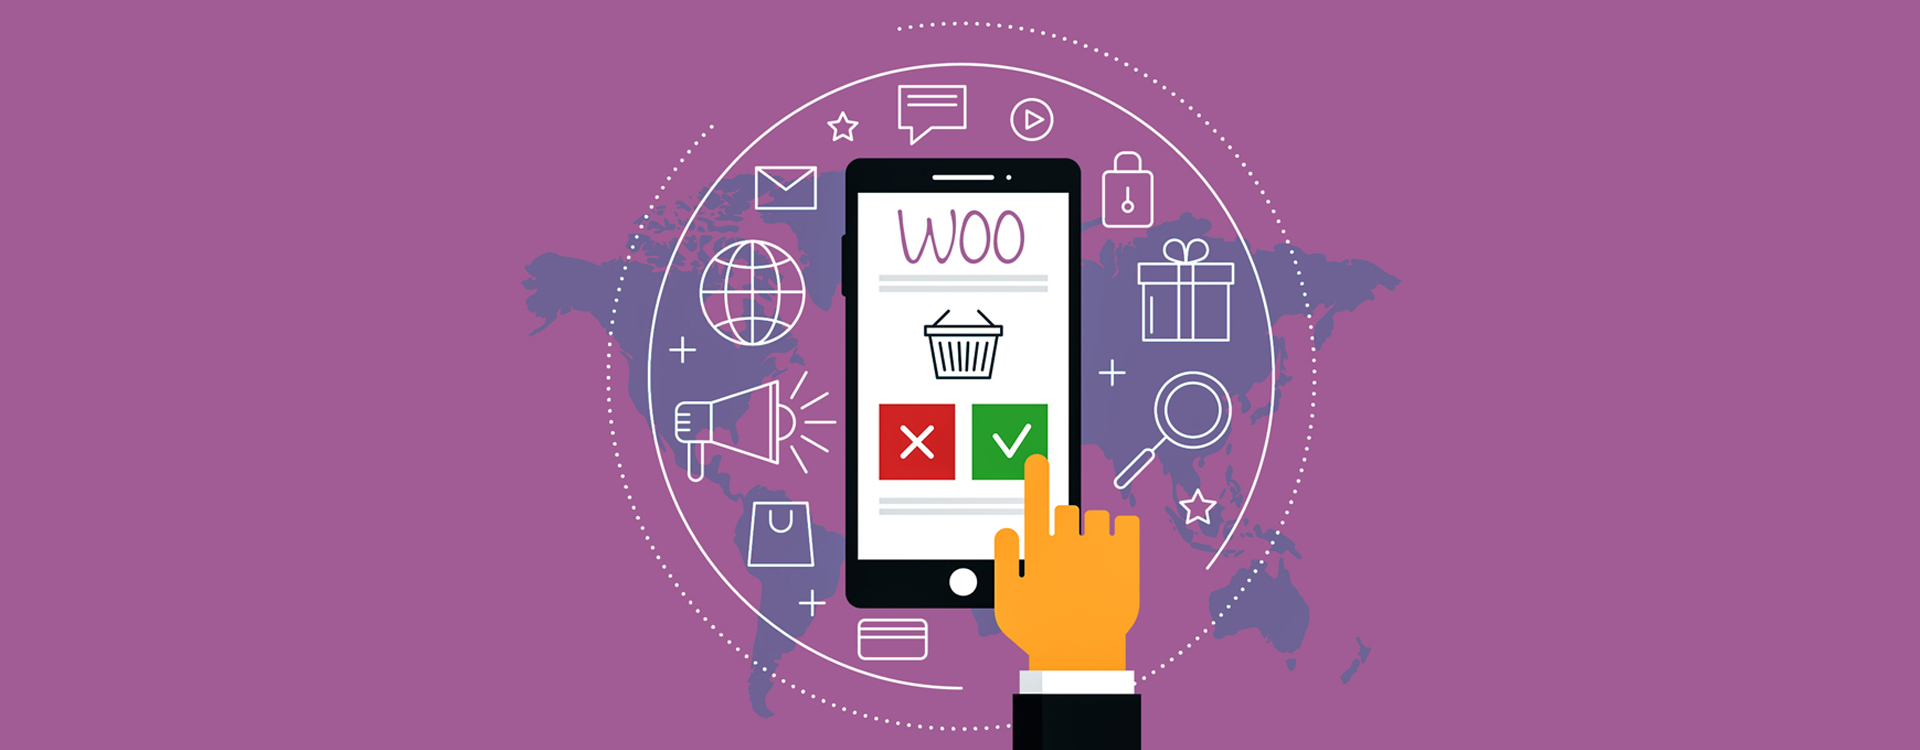 WooCommerce SEO Practices That Could Triple Your Sales